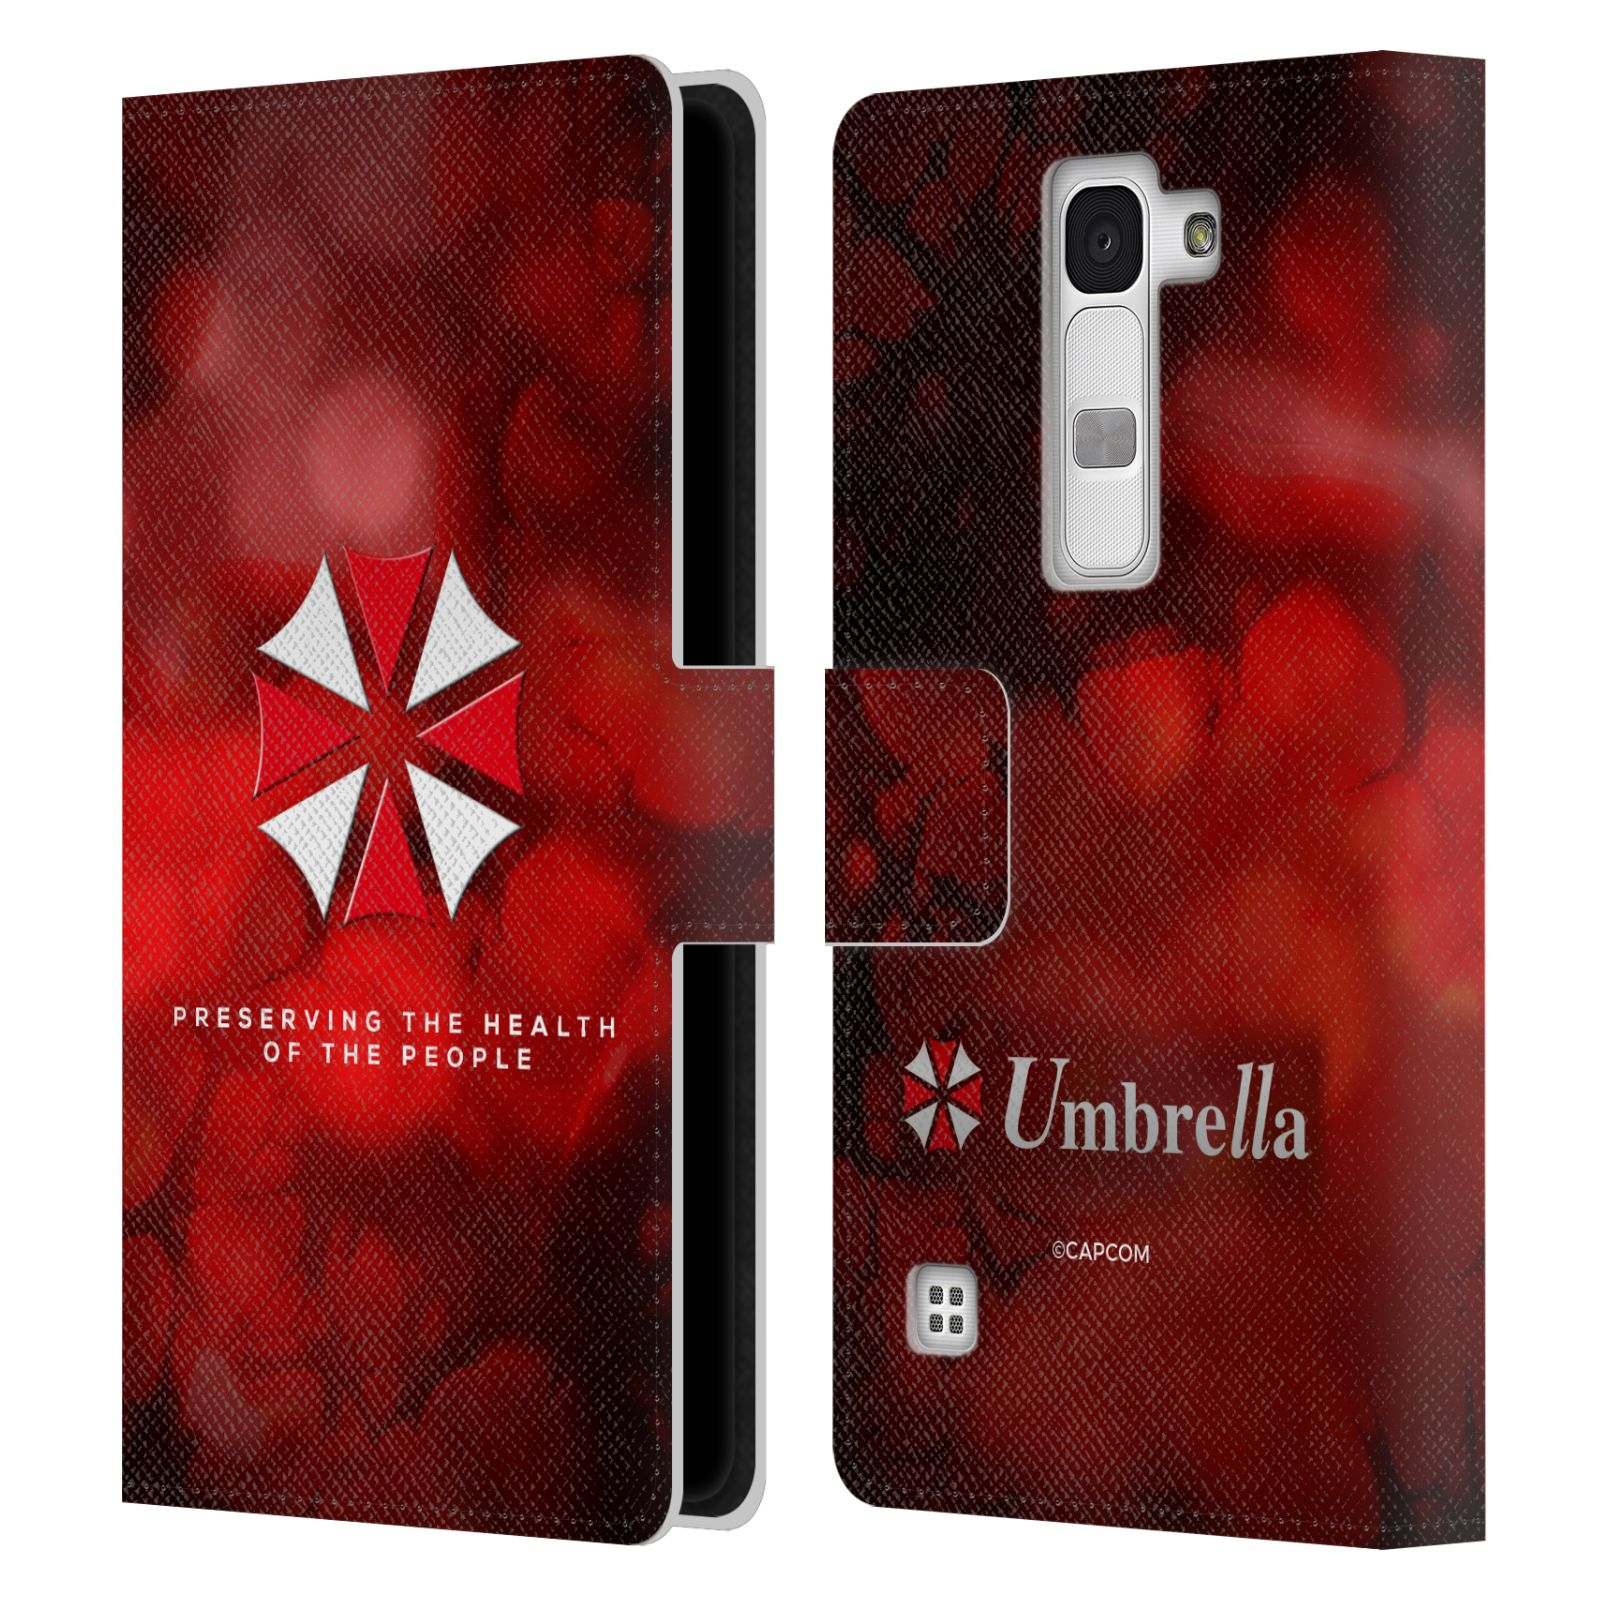 OFFICIAL-RESIDENT-EVIL-LOGO-LEATHER-BOOK-WALLET-CASE-COVER-FOR-LG-PHONES-2